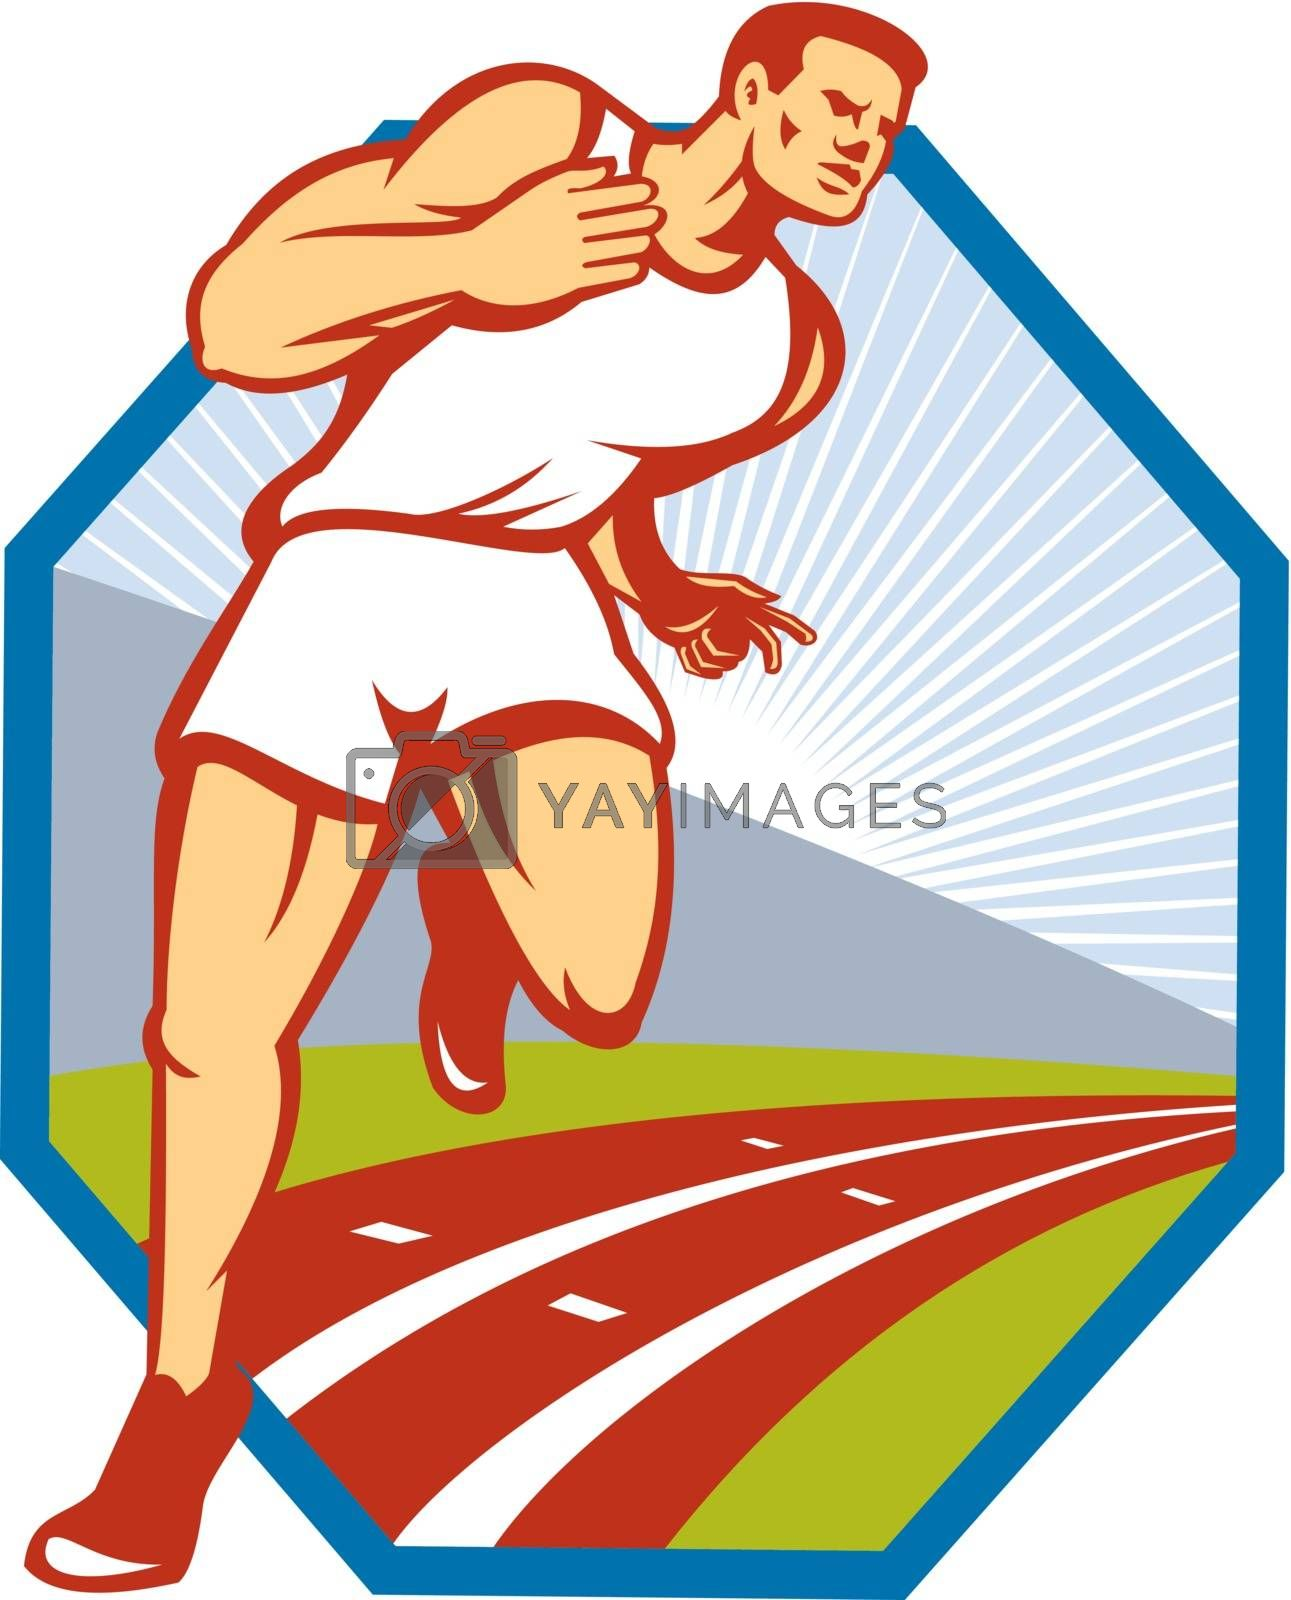 Illustration of a marathon runner track and field athlete running on race track done in retro style set inside hexagon.